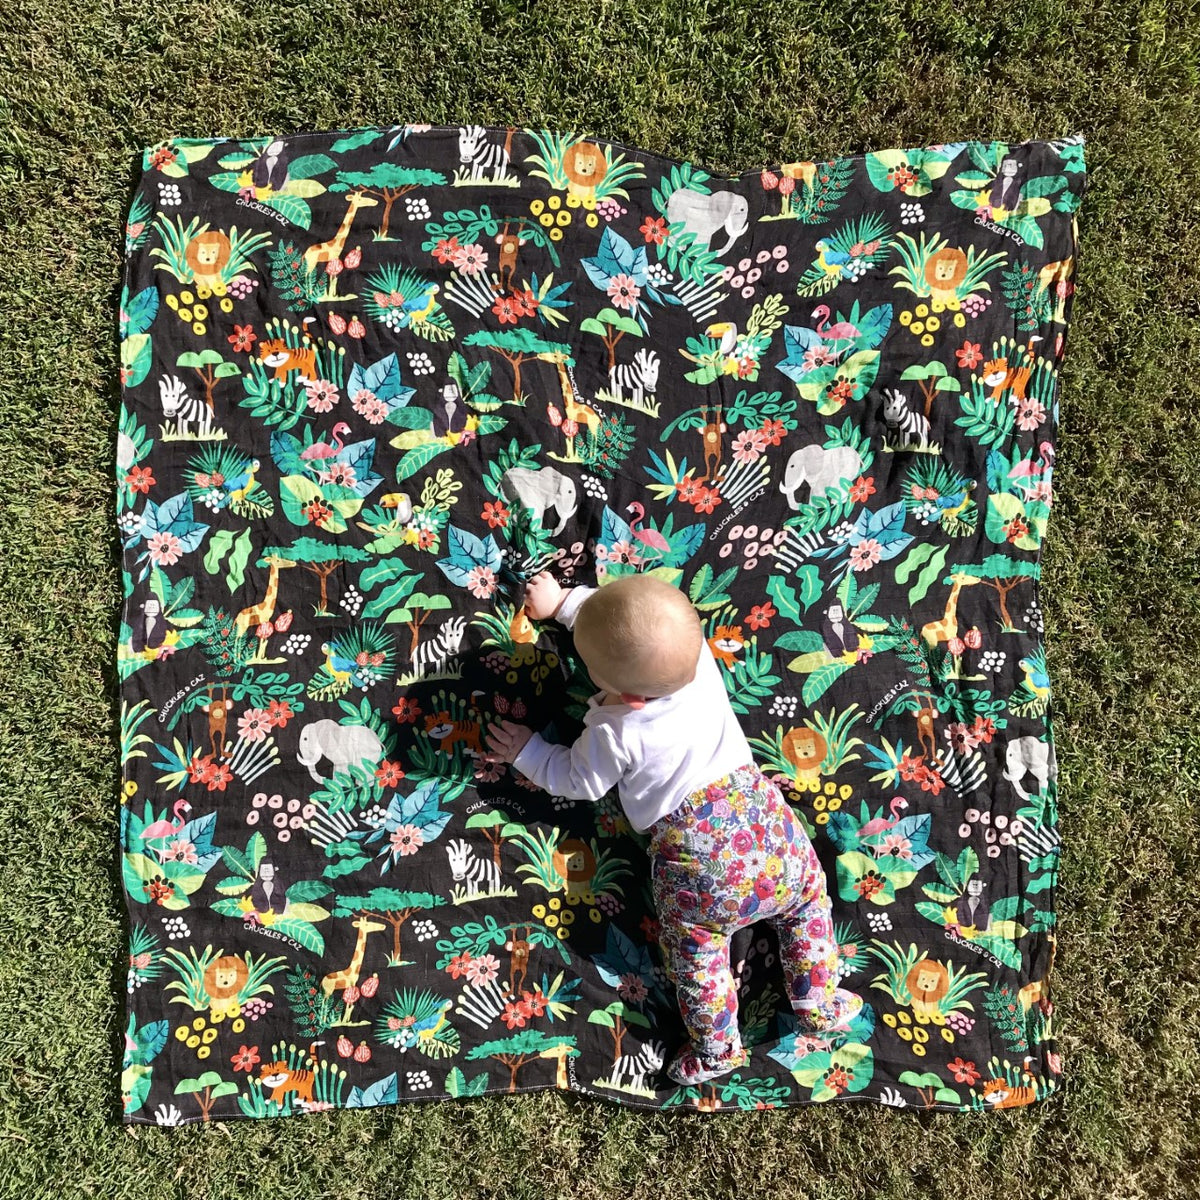 Tropical Palm / Black Reversible Tote Bag, Changing Mat & Jungle Muslin Swaddle - Gift Set